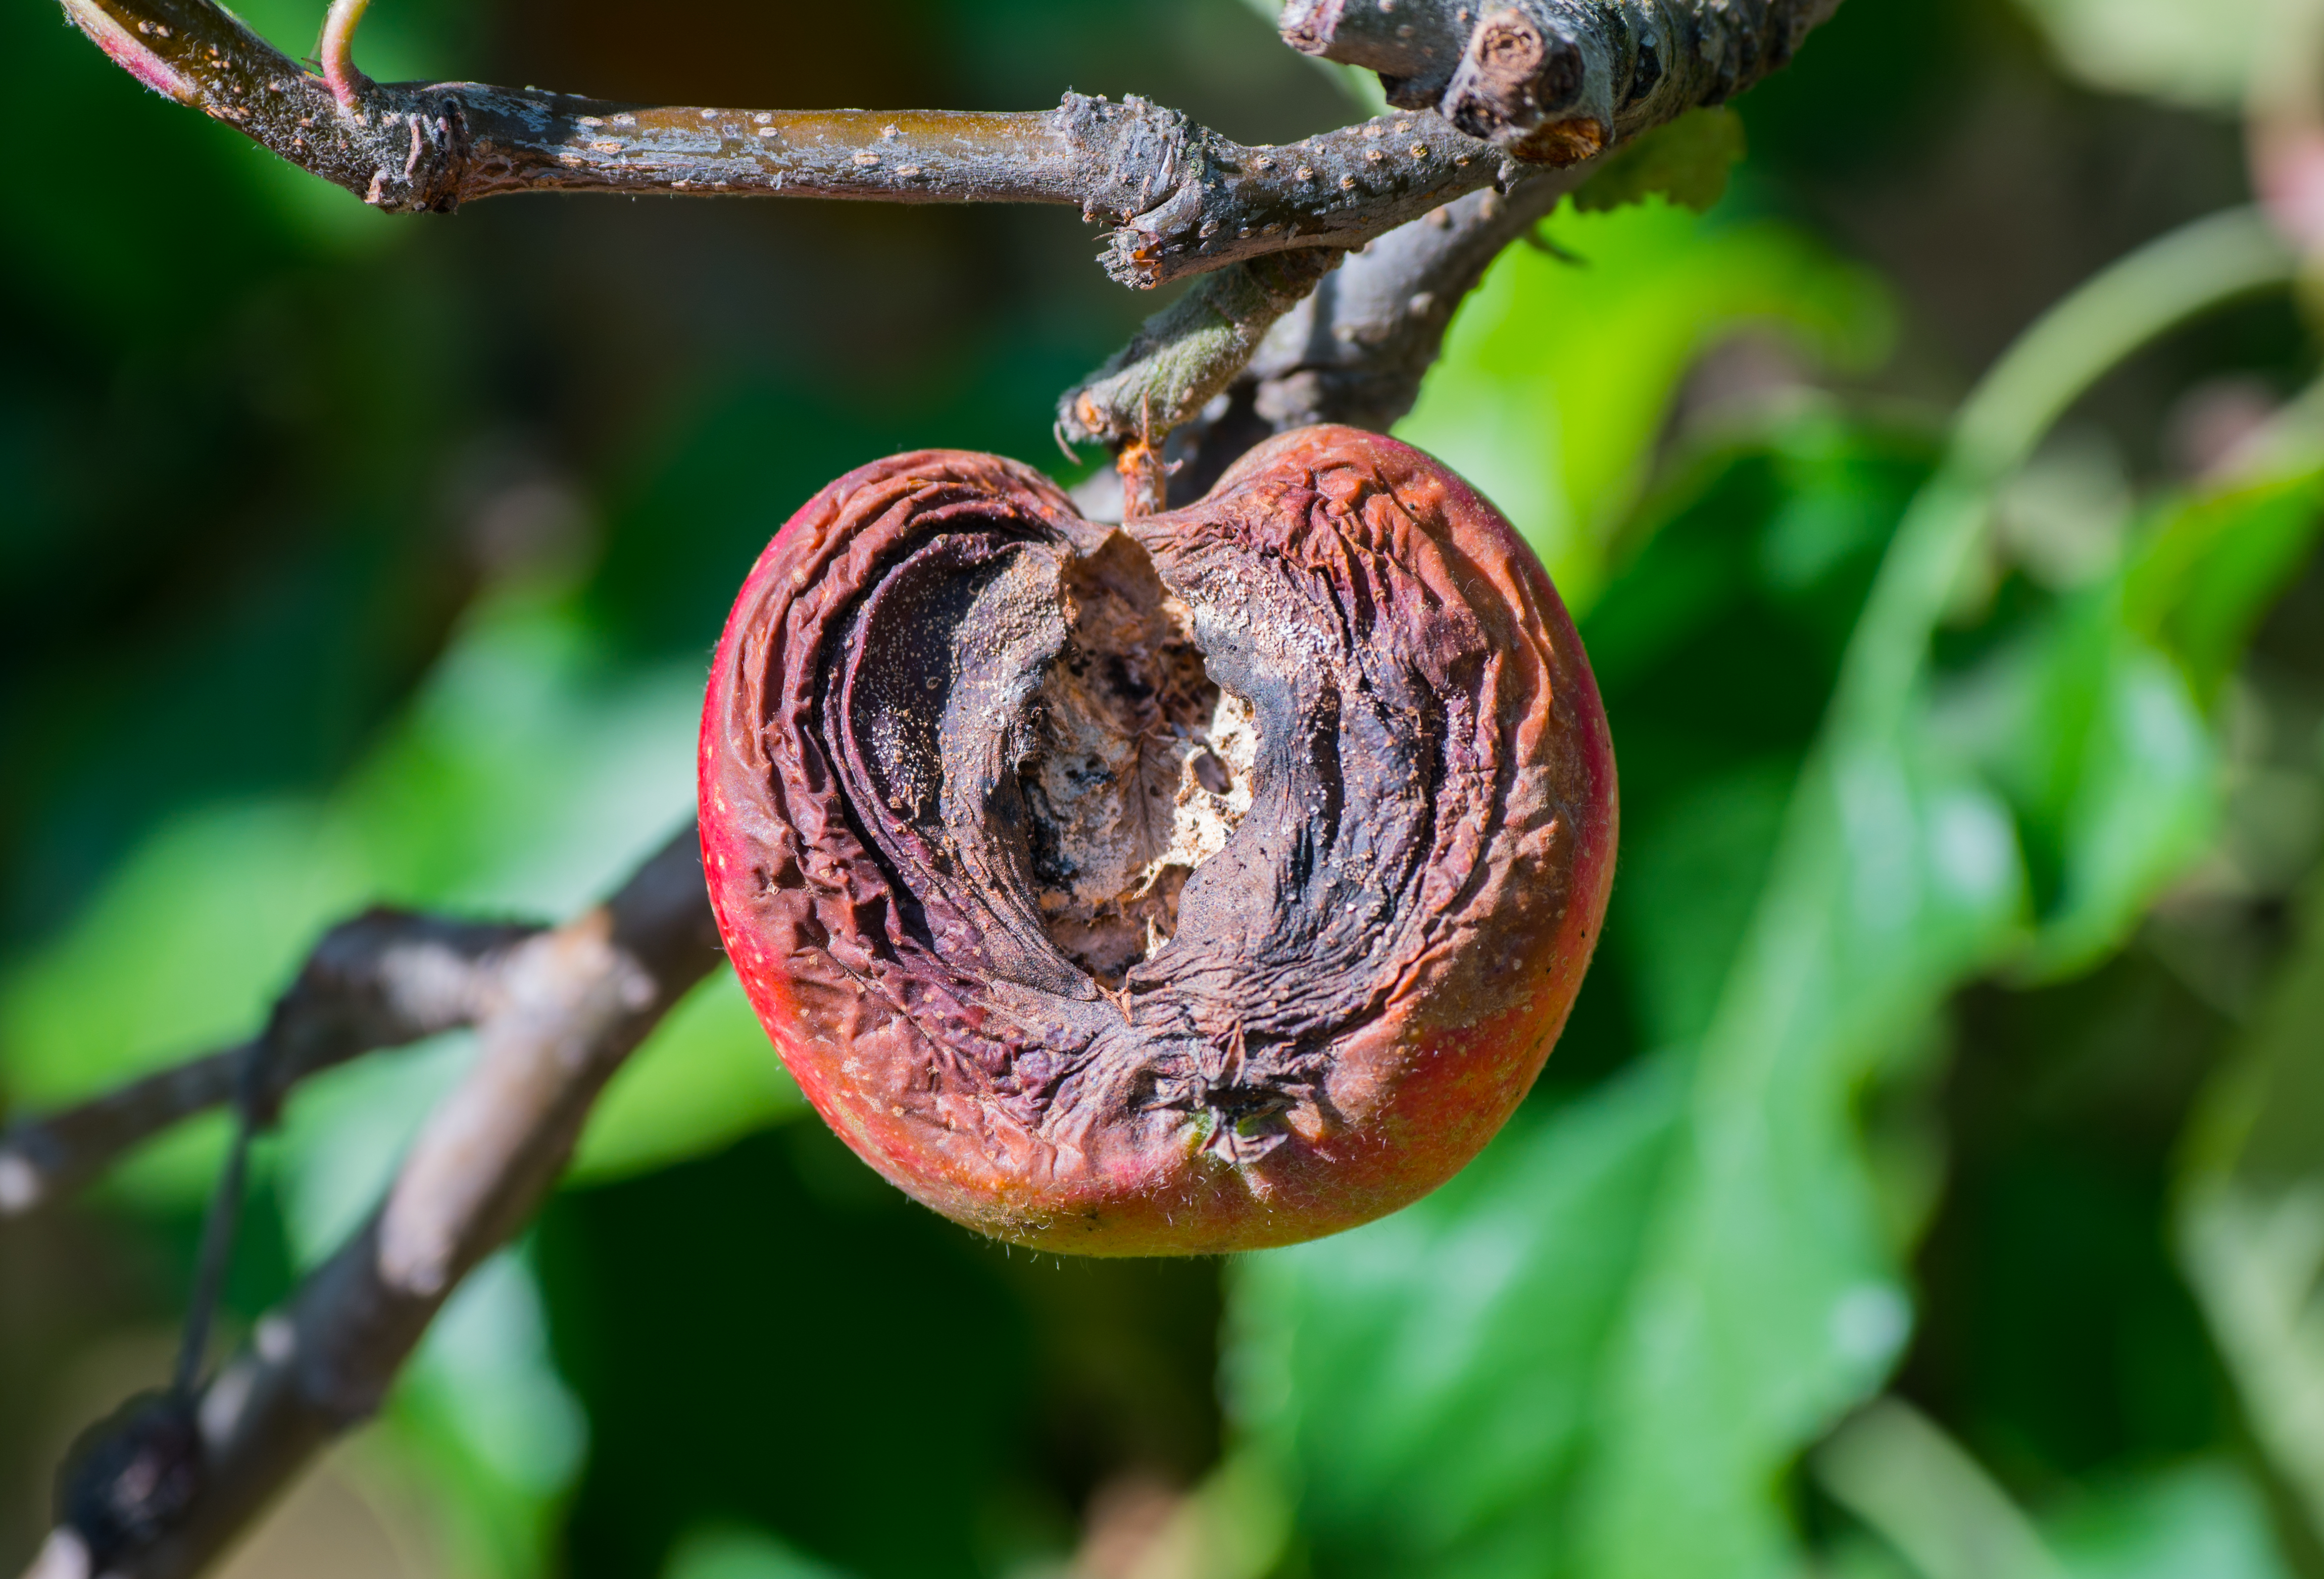 Rotted apple